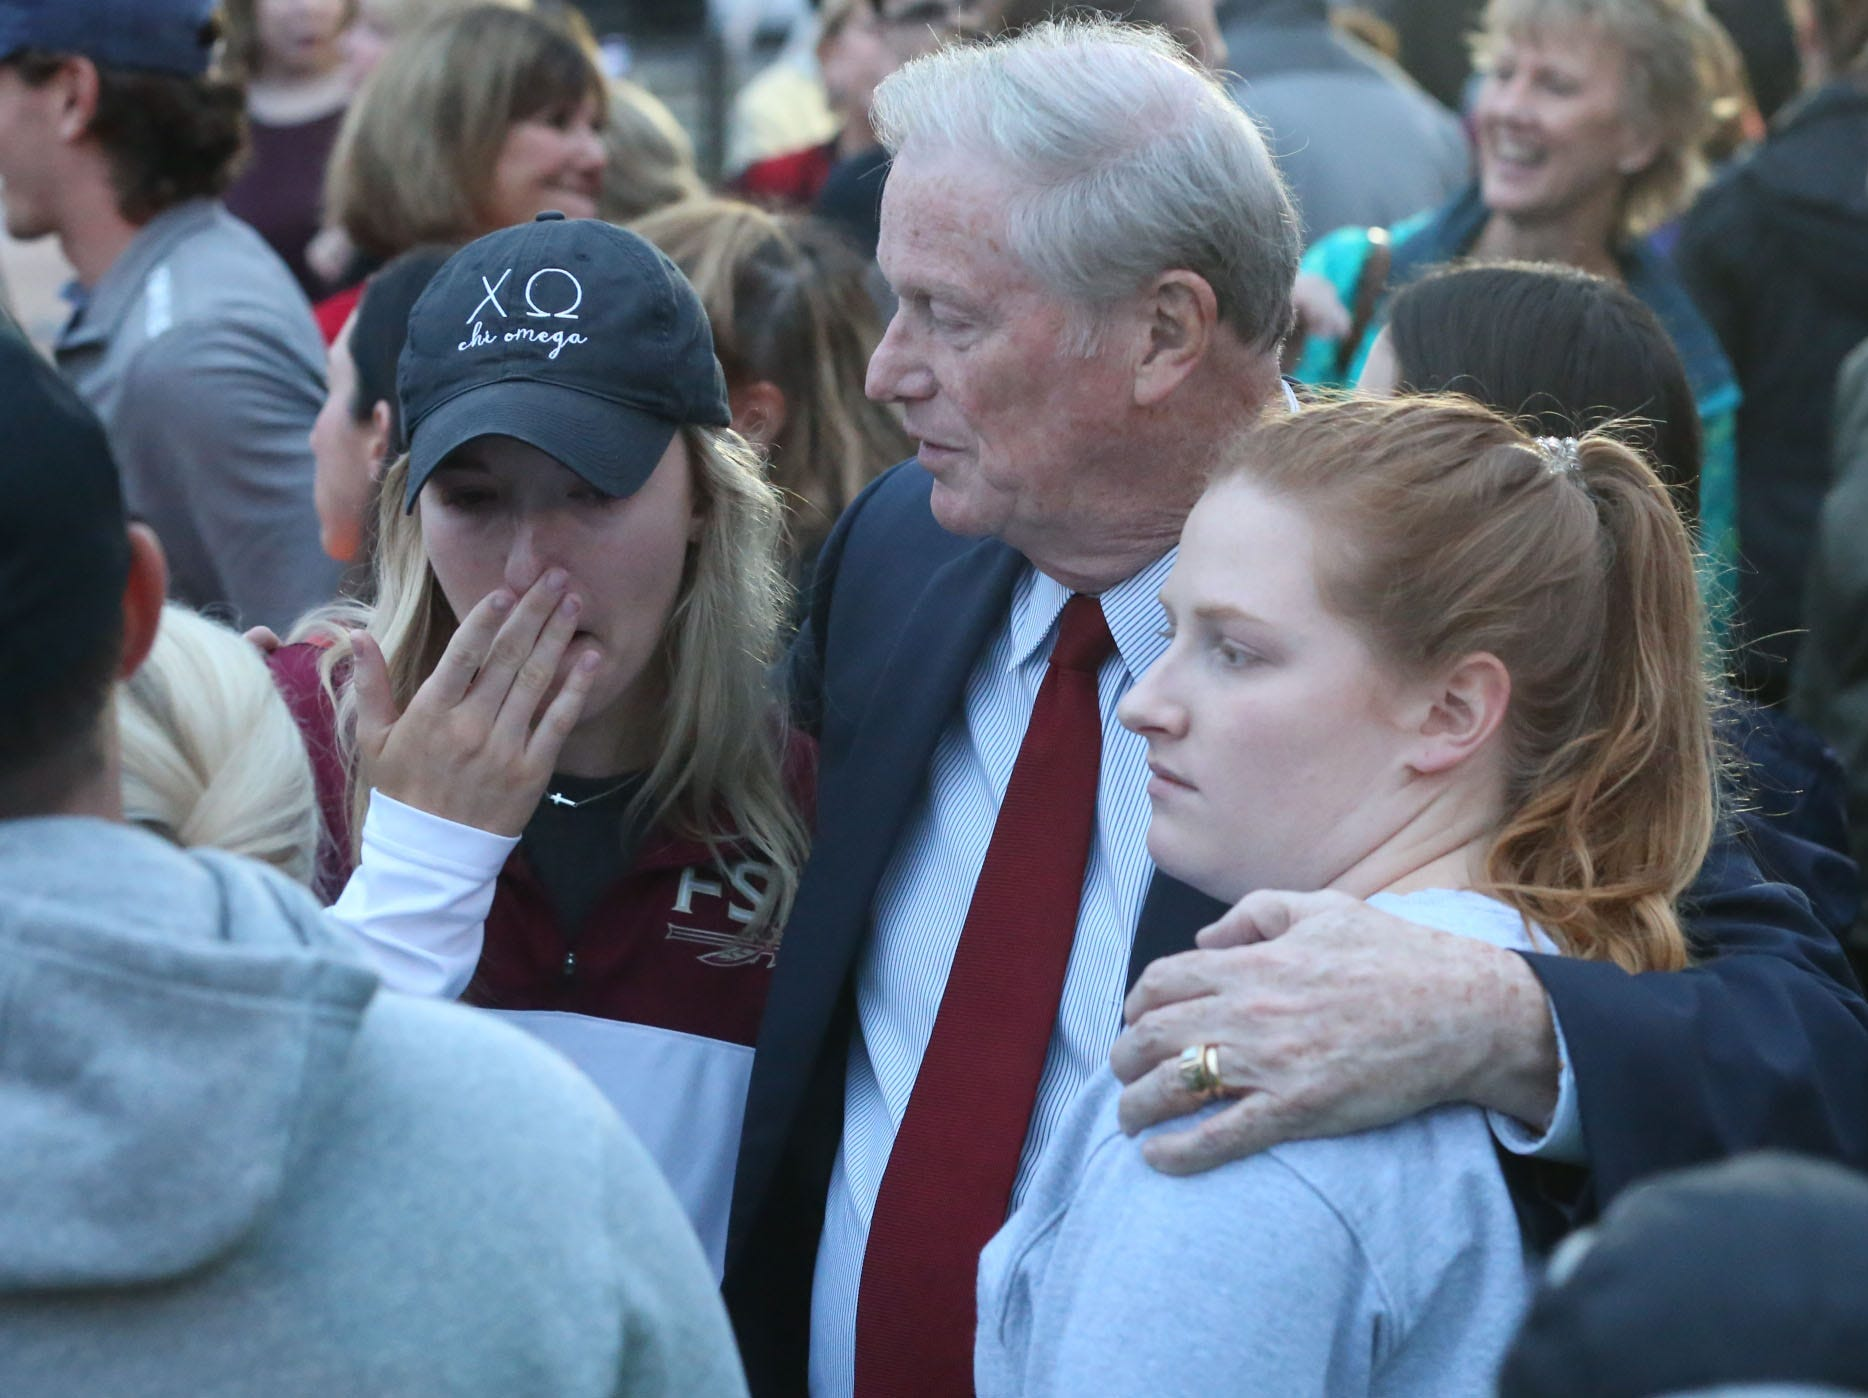 John Thrasher, Florida State University President, consoles students at a vigil held at Florida State University in honor of the two lives that were lost on the night of the shooting at Hot Yoga Tallahassee, on Nov. 4, 2018.